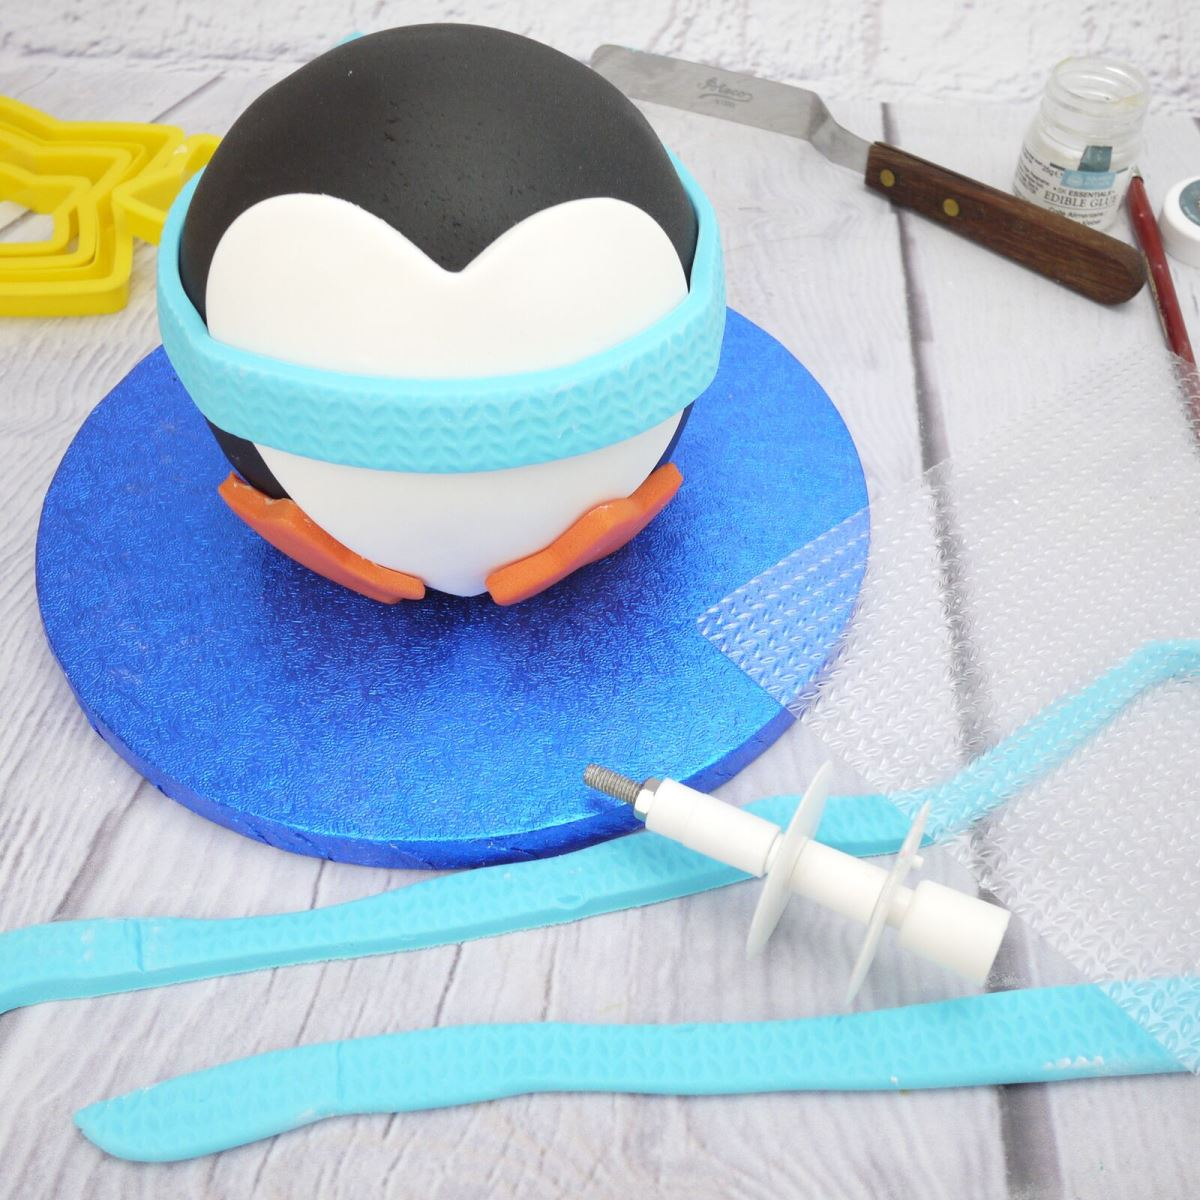 Penguin cake step 4